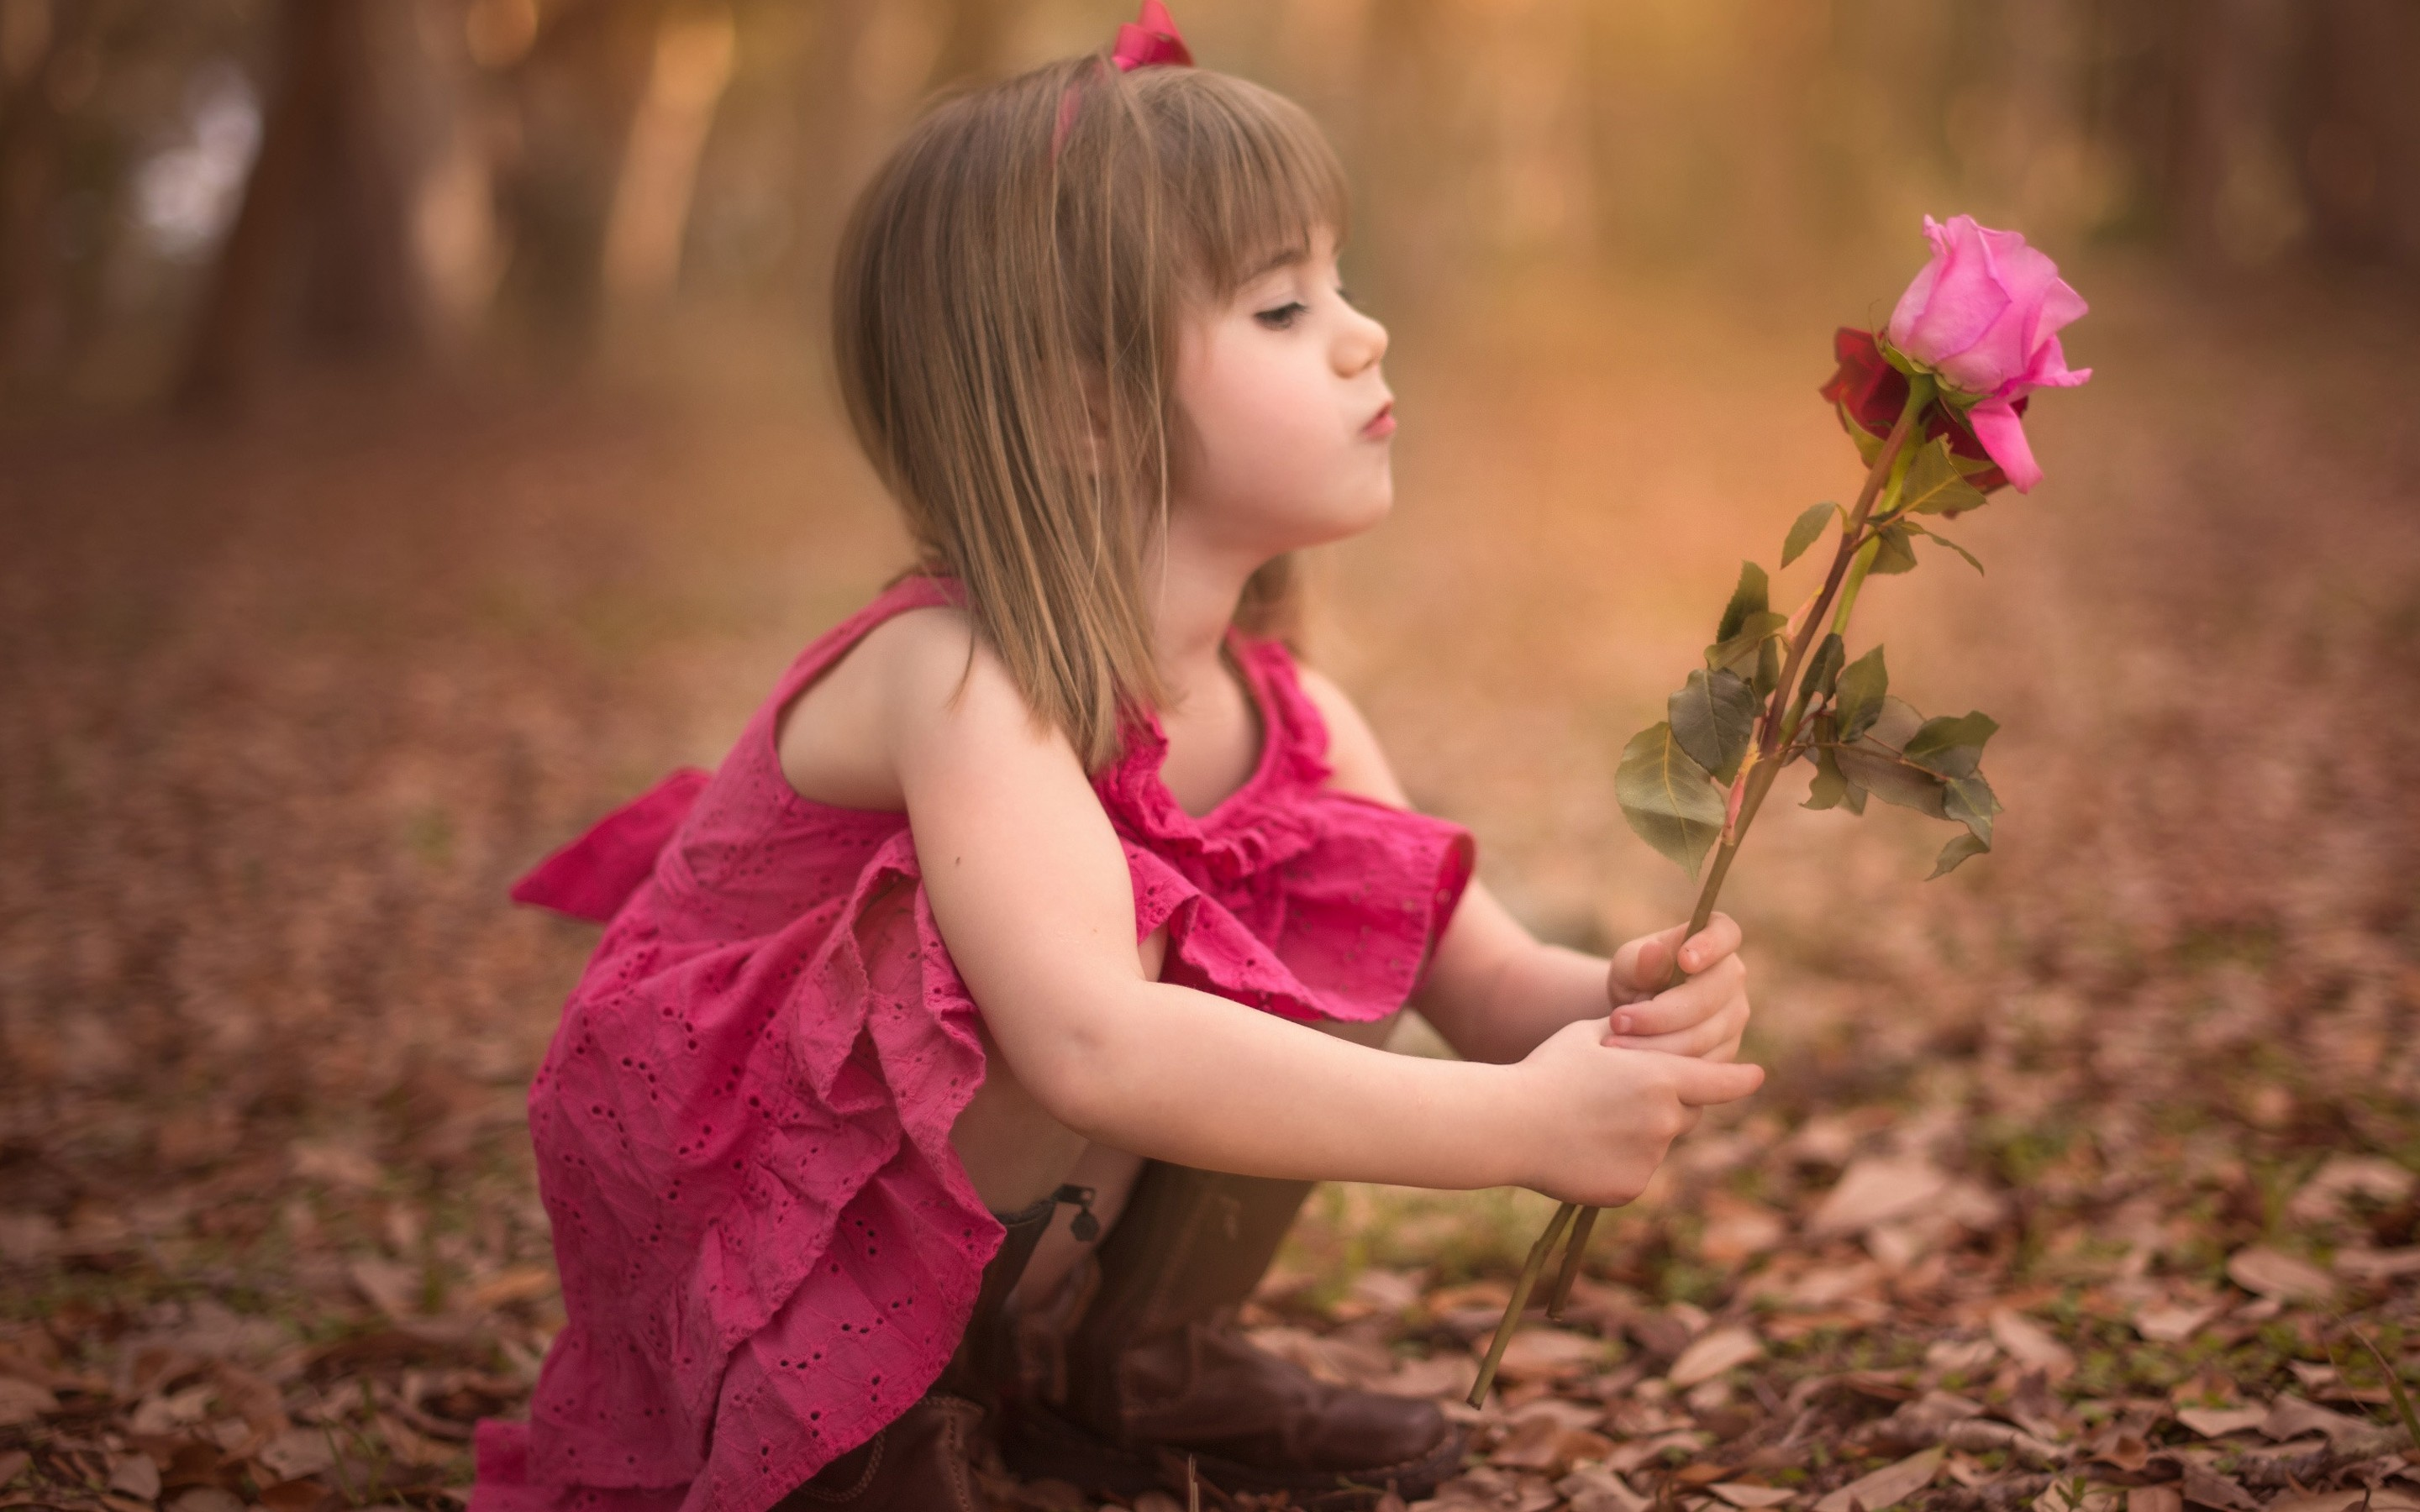 Wallpaper for girls download free stunning wallpapers for girls voltagebd Images